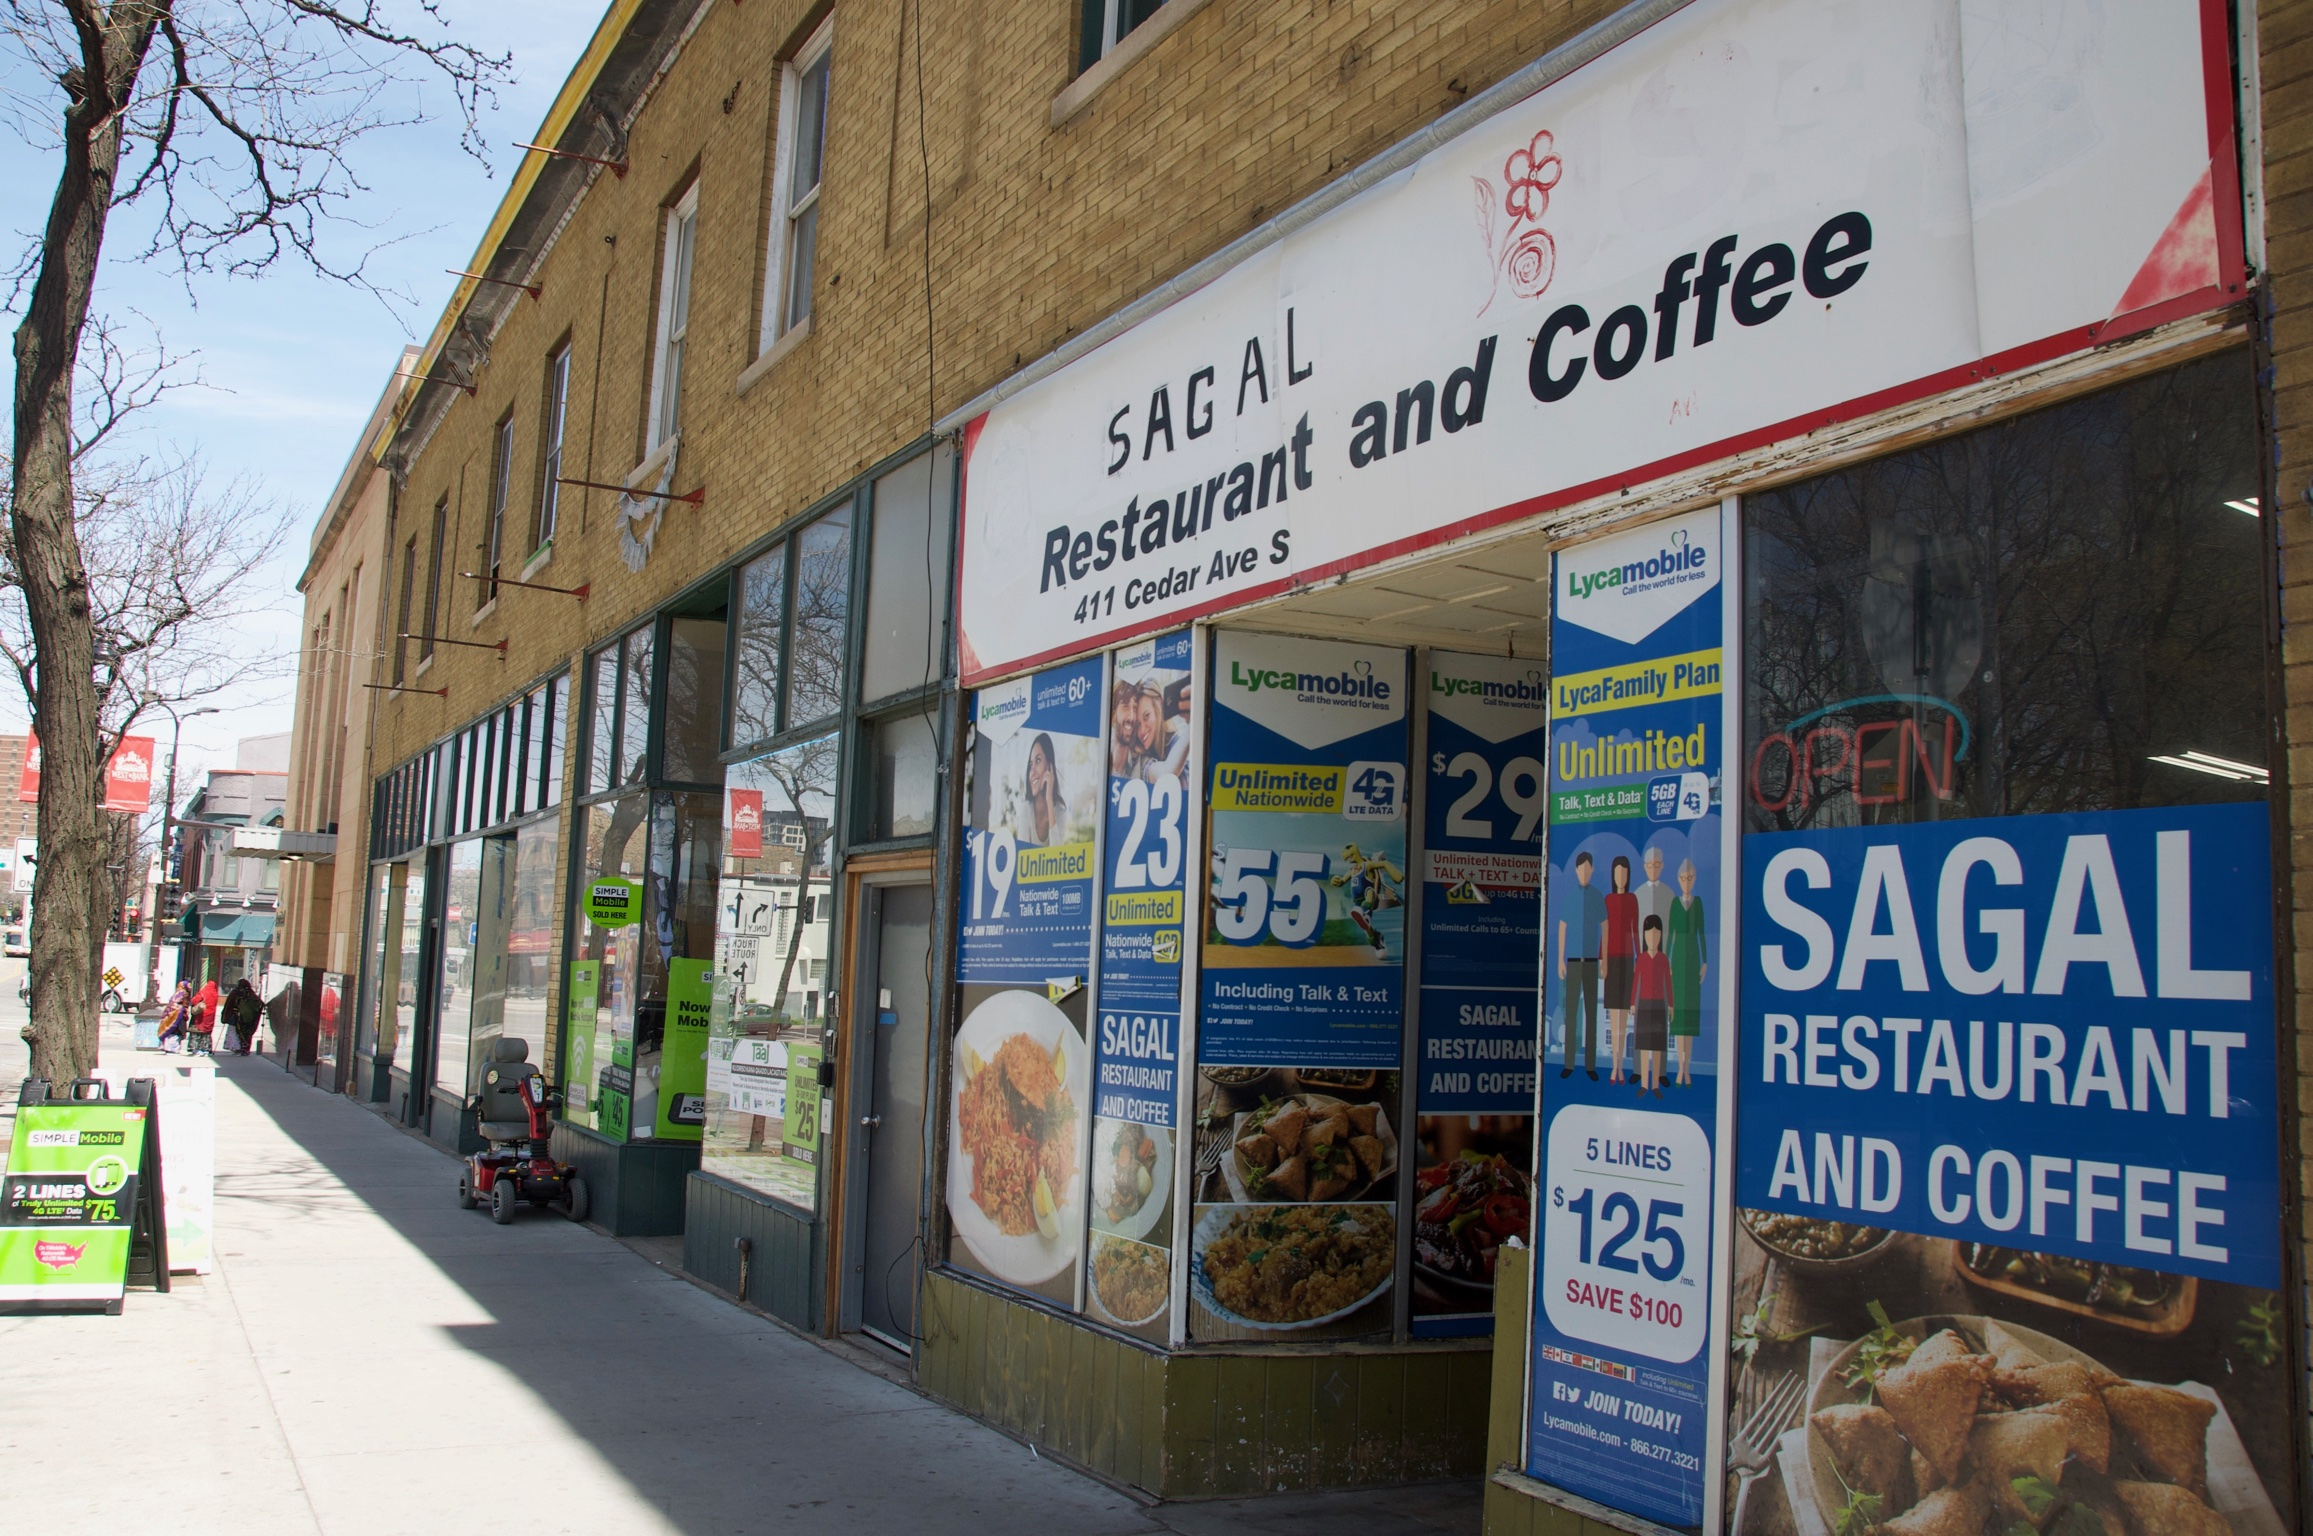 The storefronts in these two images reflect the cultures of the surrounding neighborhood